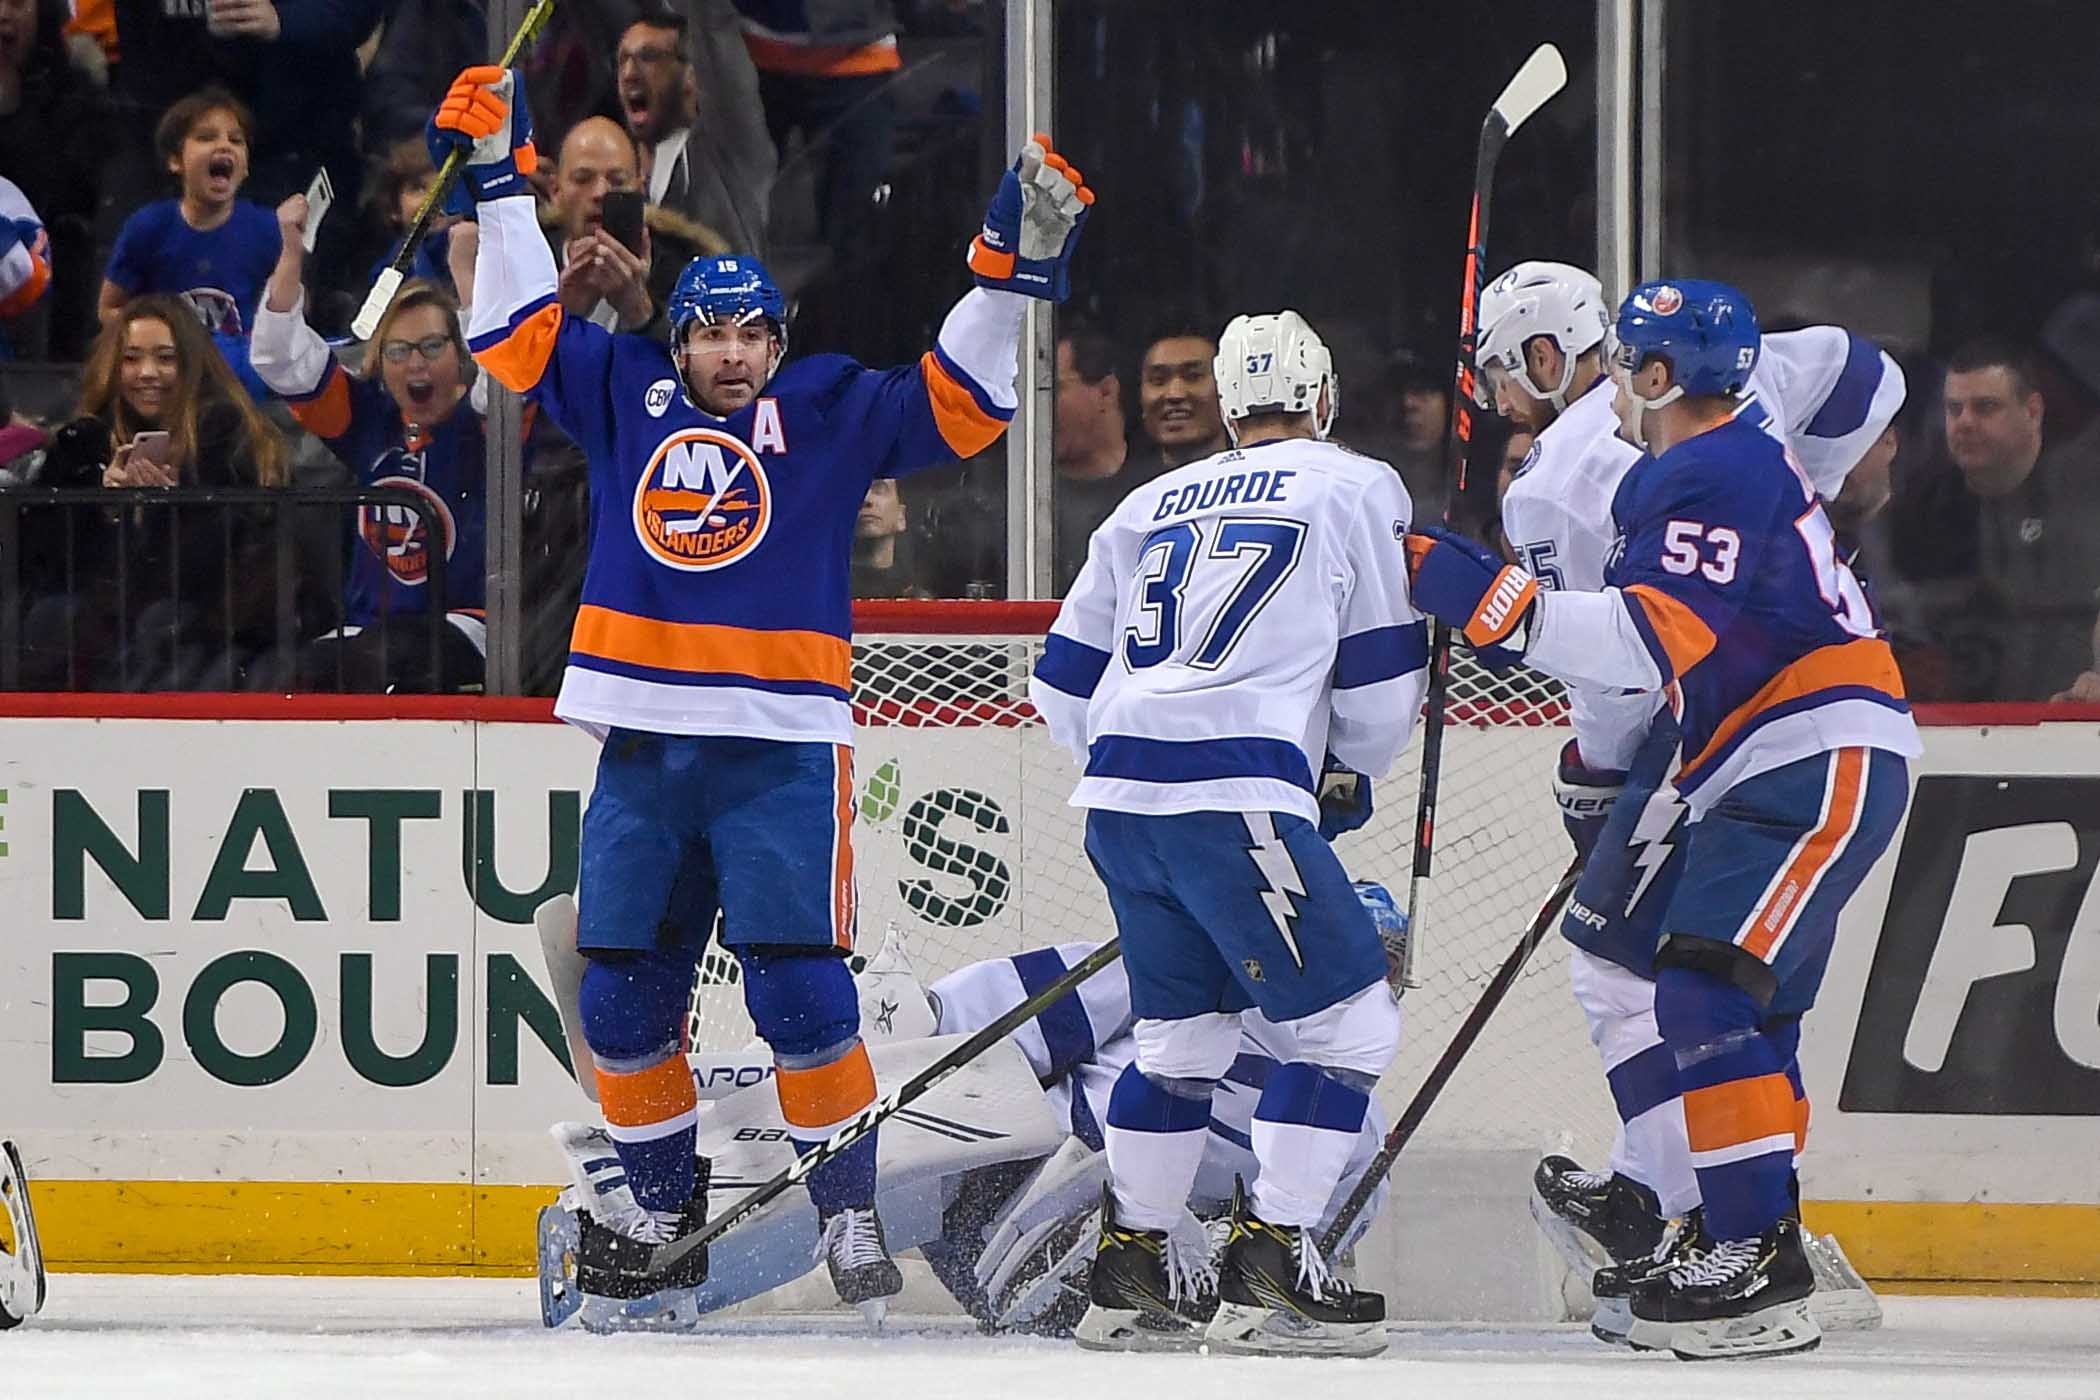 Jan 13, 2019; Brooklyn, NY, USA; New York Islanders right wing Cal Clutterbuck (15) celebrates his goal against theTampa Bay Lightning during the first period at Barclays Center. Mandatory Credit: Dennis Schneidler-USA TODAY Sports